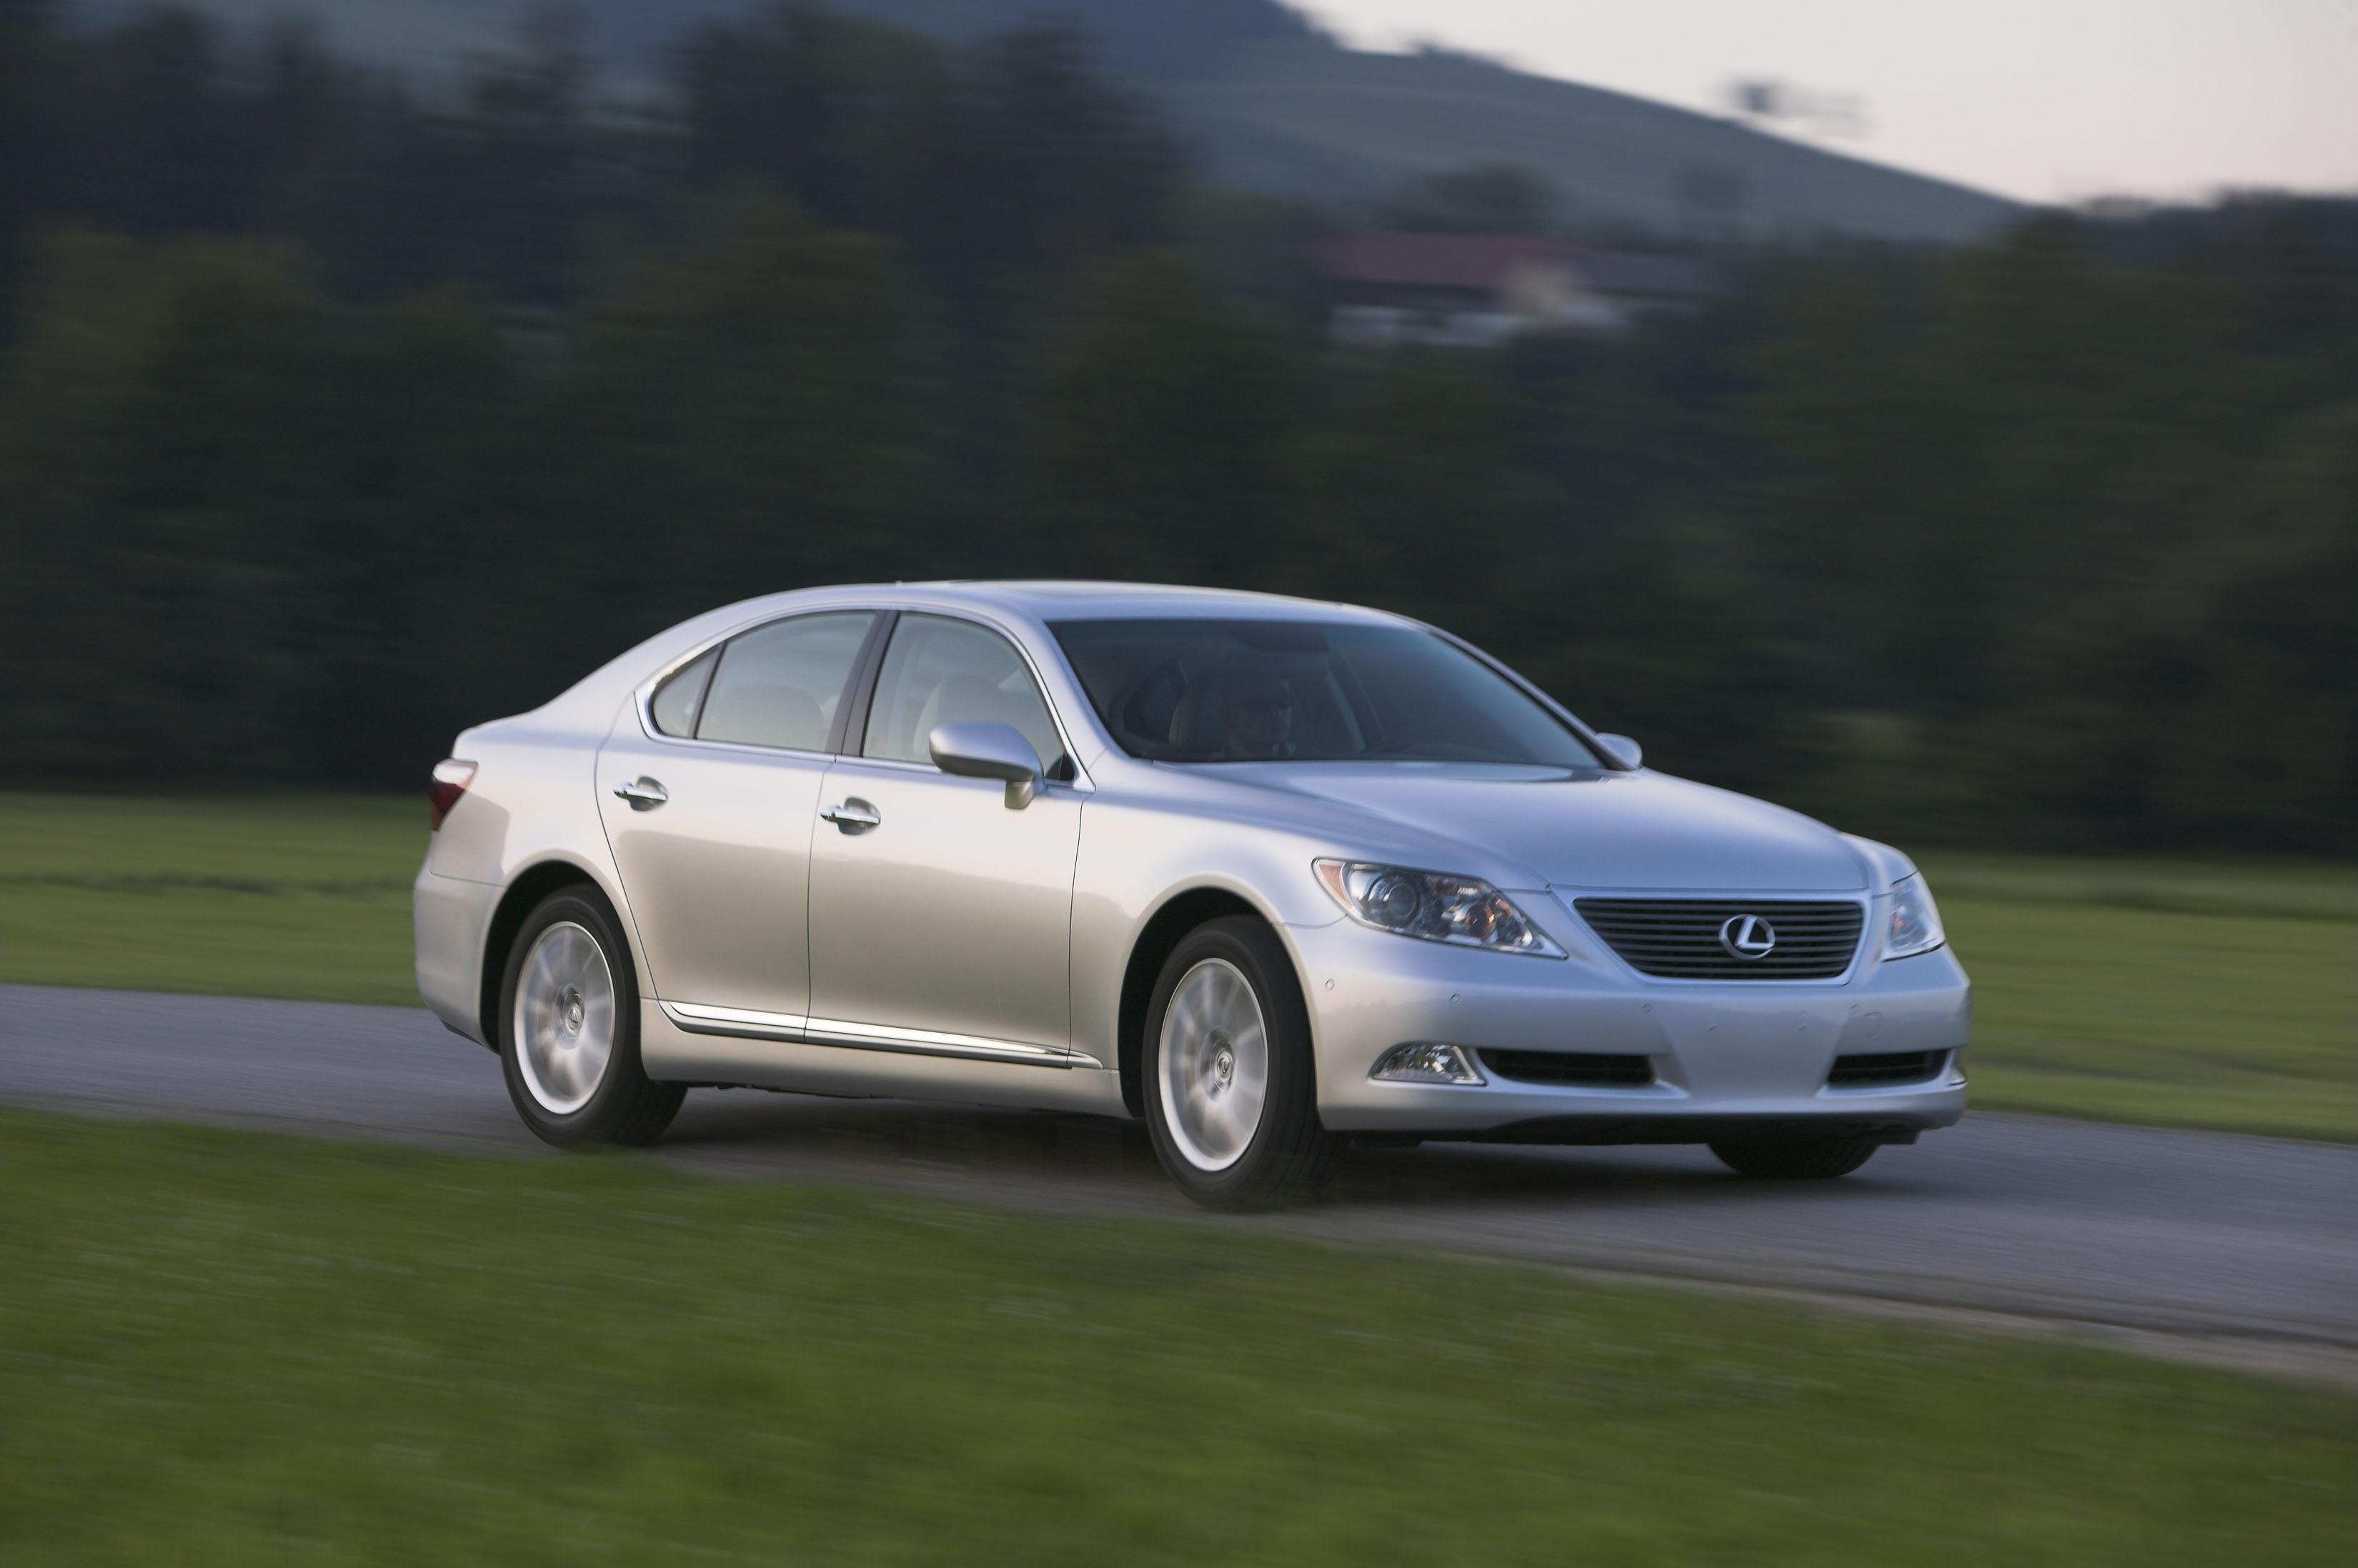 lexus for review cars ls vehicle and pics drivins sale